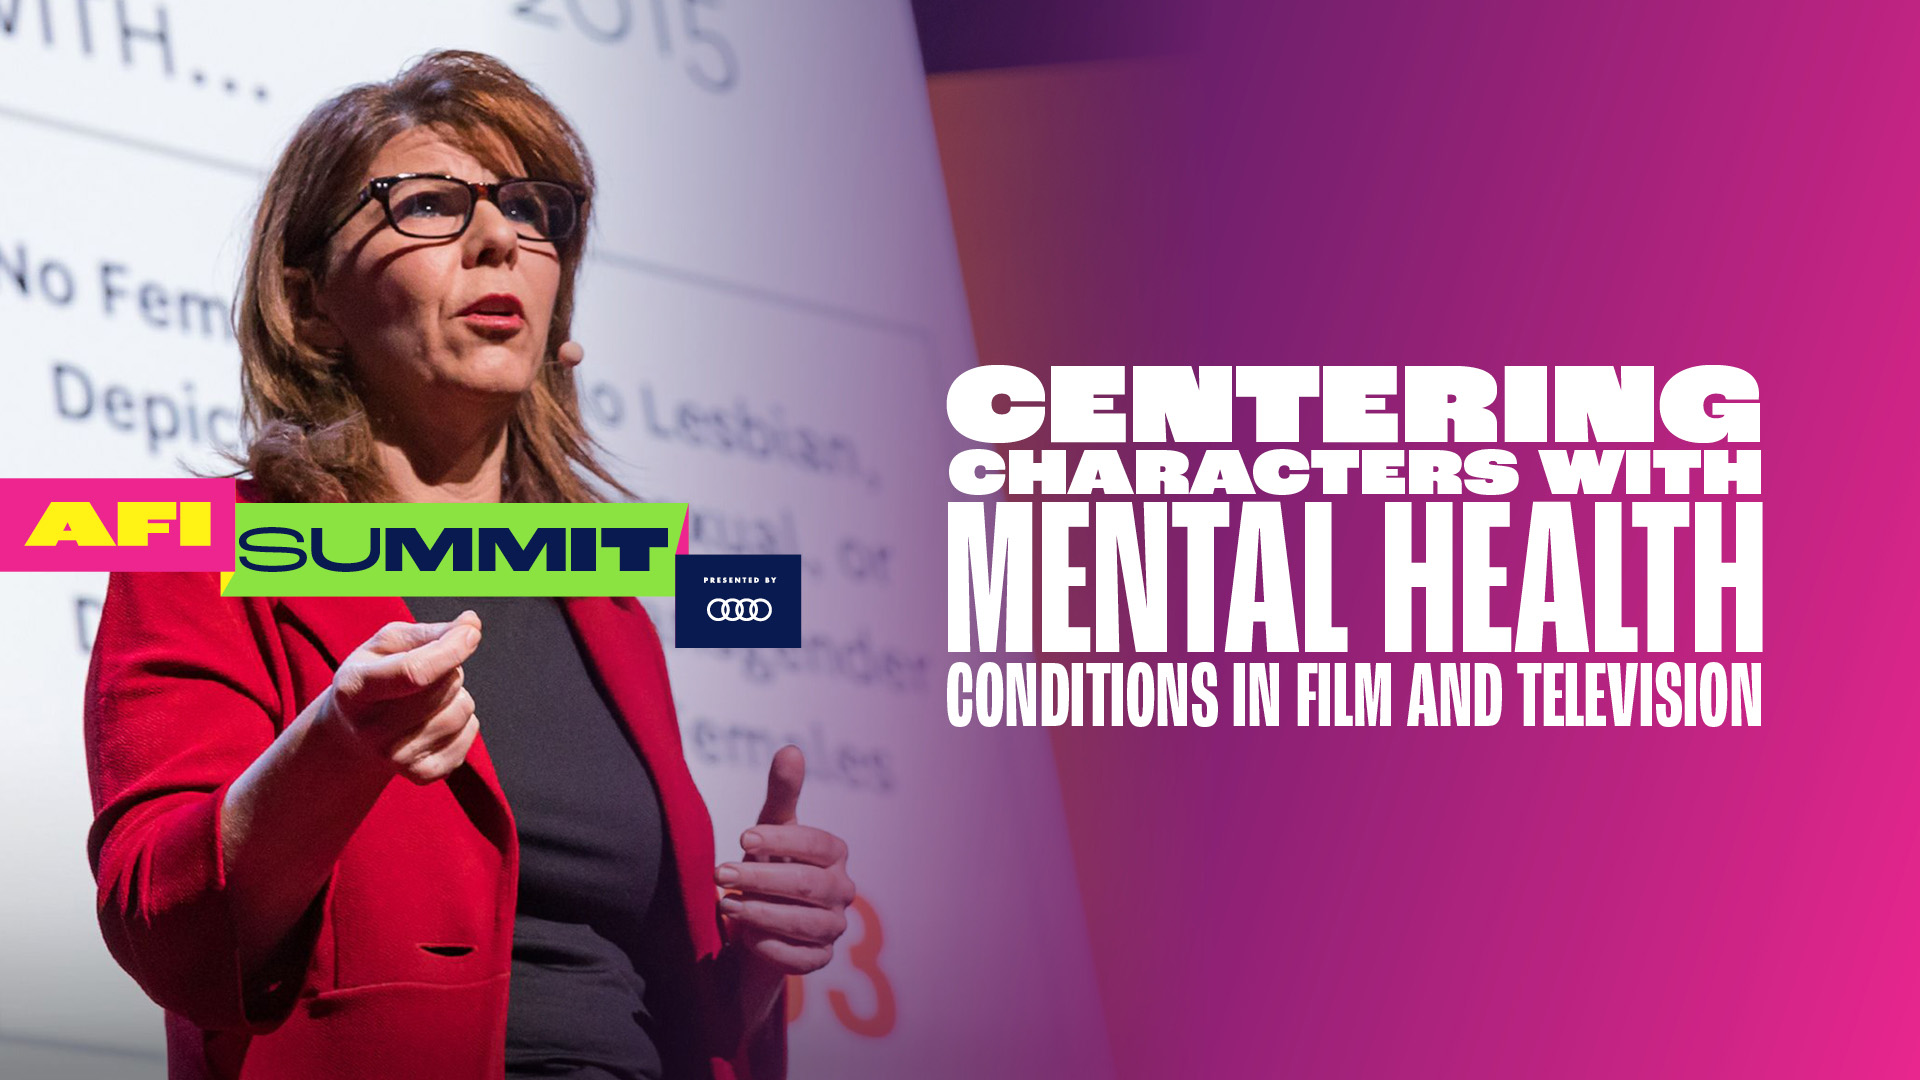 CENTERING CHARACTERS WITH MENTAL HEALTH CONDITIONS IN FILM AND TELEVISION